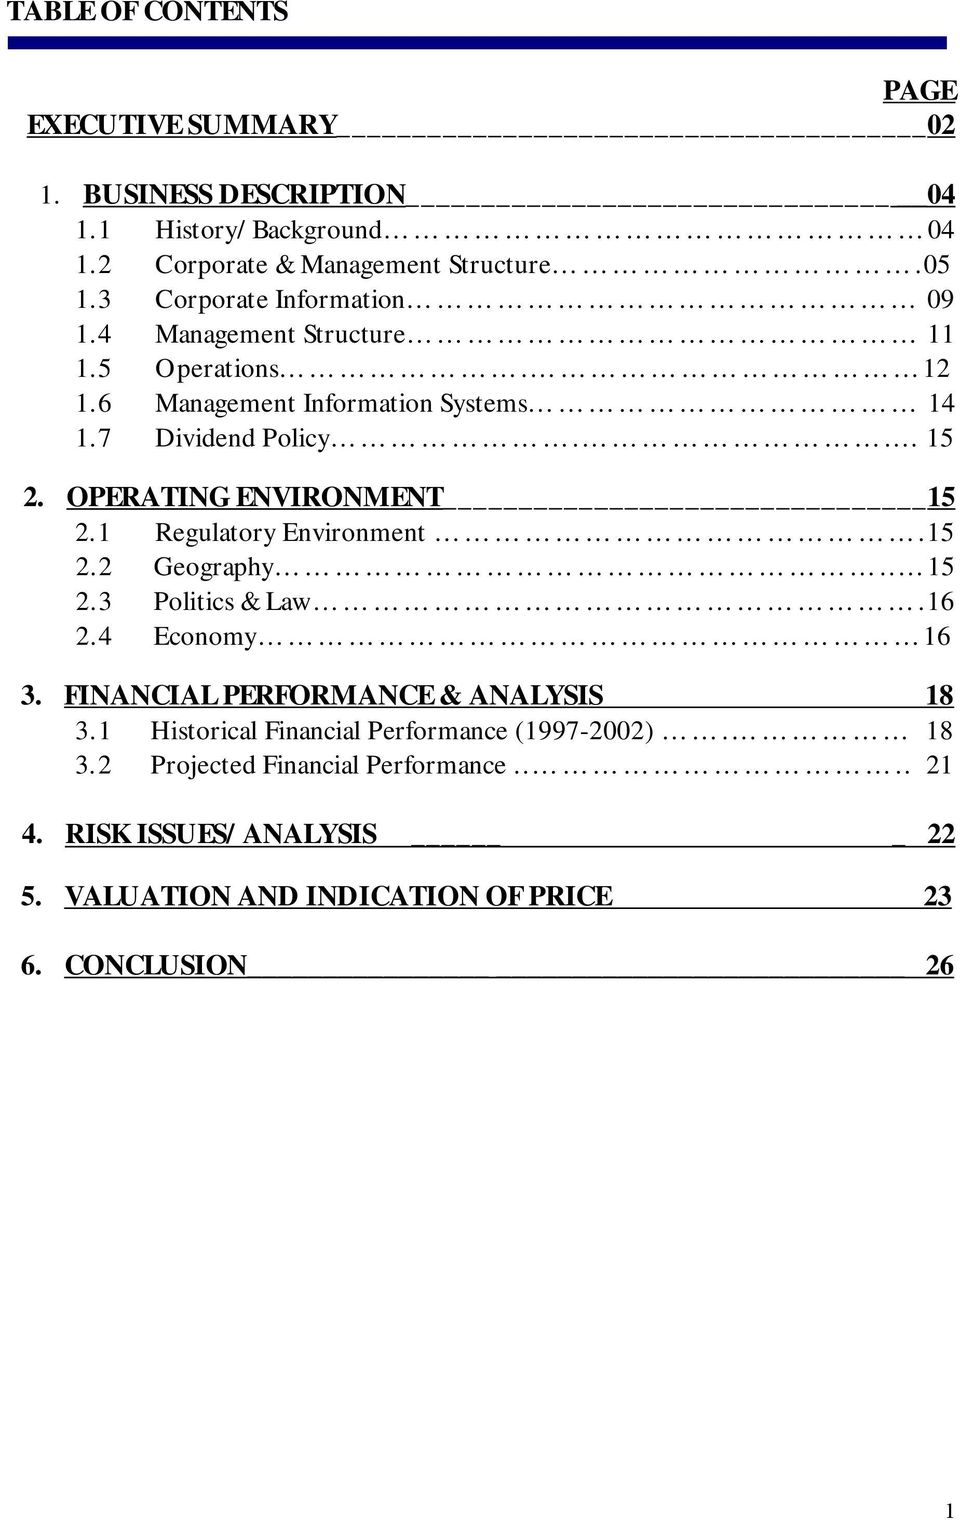 OPERATING ENVIRONMENT 15 2.1 Regulatory Environment.15 2.2 Geography.. 15 2.3 Politics & Law.16 2.4 Economy 16 3. FINANCIAL PERFORMANCE & ANALYSIS 18 3.